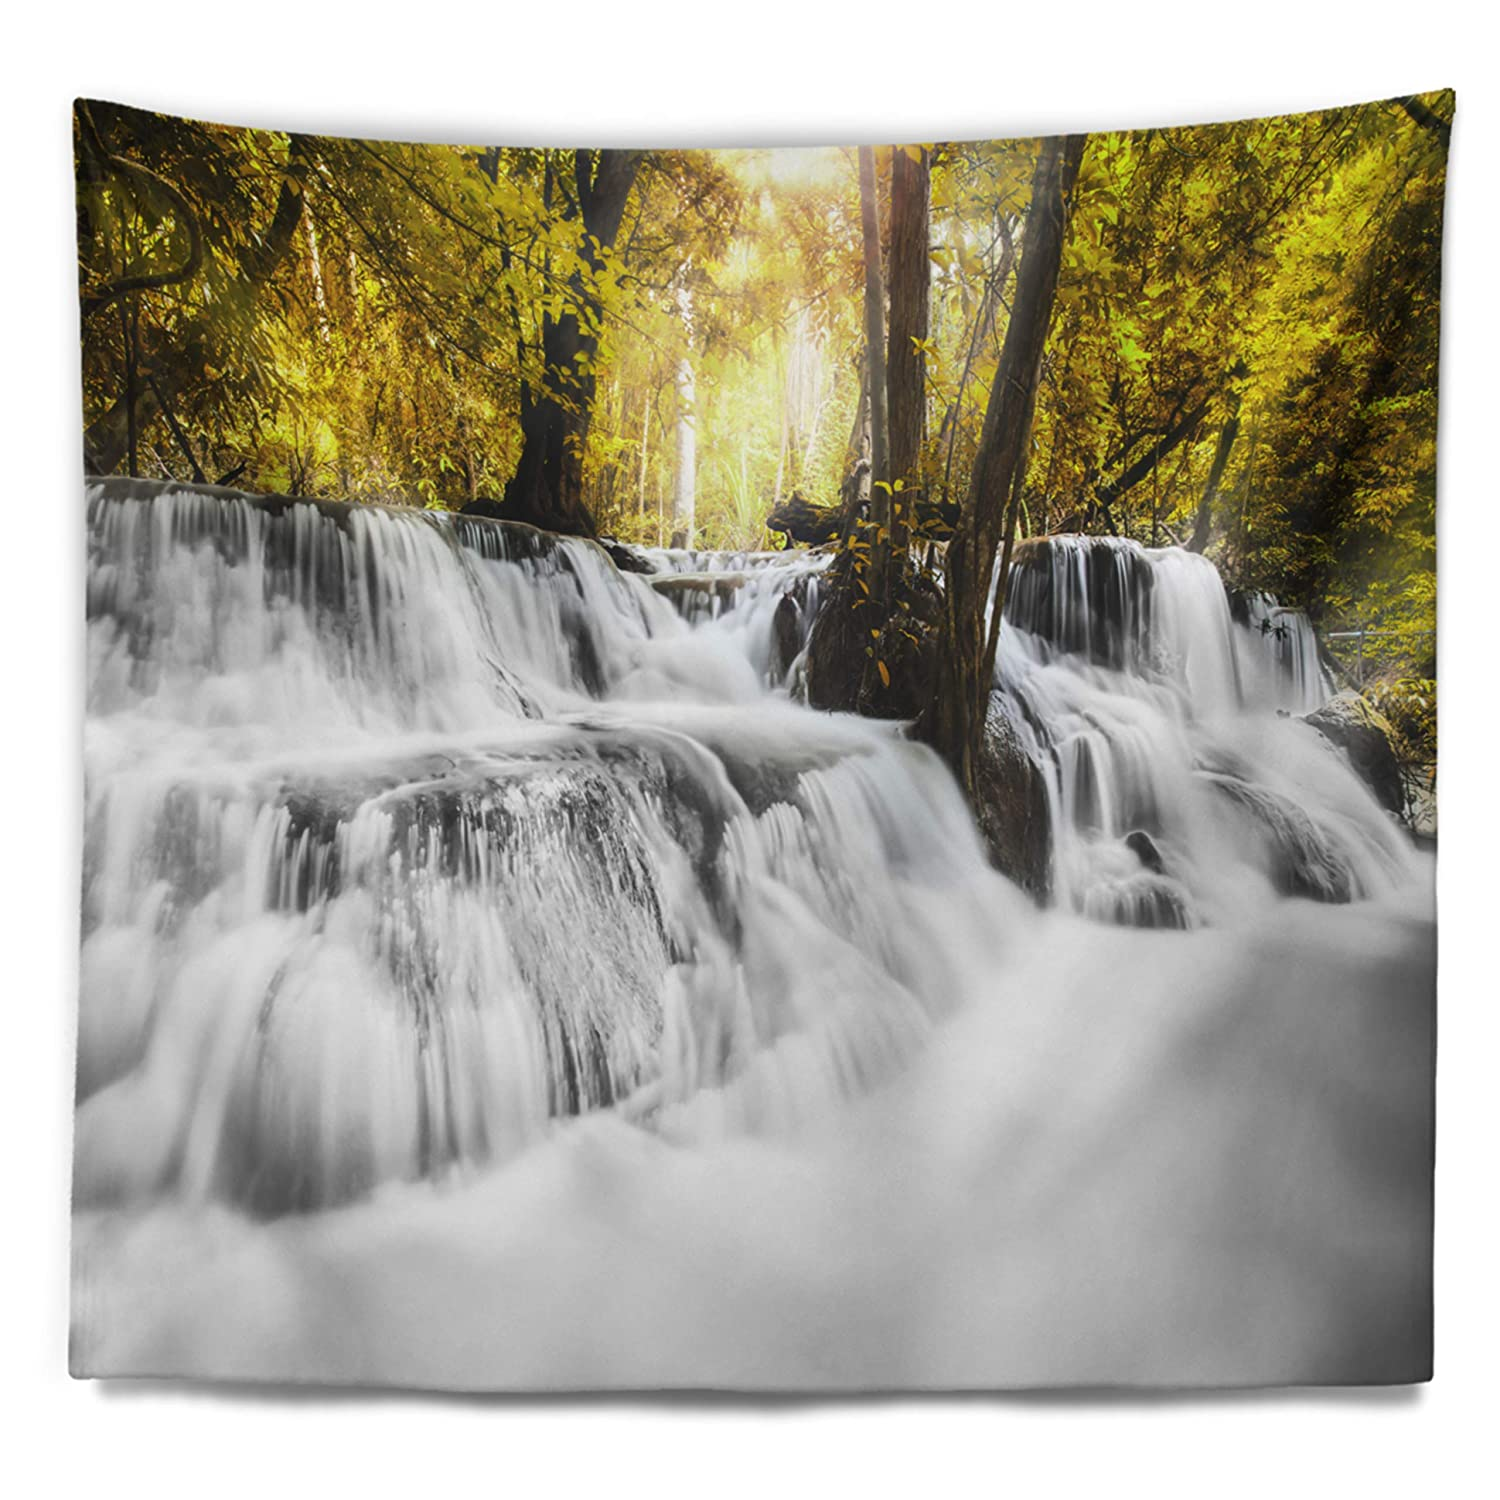 Designart Tap7139 80 68 Colorful Erawan Waterfall Landscape Photography Blanket Décor Art For Home And Office Wall Tapestry X Large 80 In X 68 In Created On Lightweight Polyester Fabric Tapestries Home Kitchen